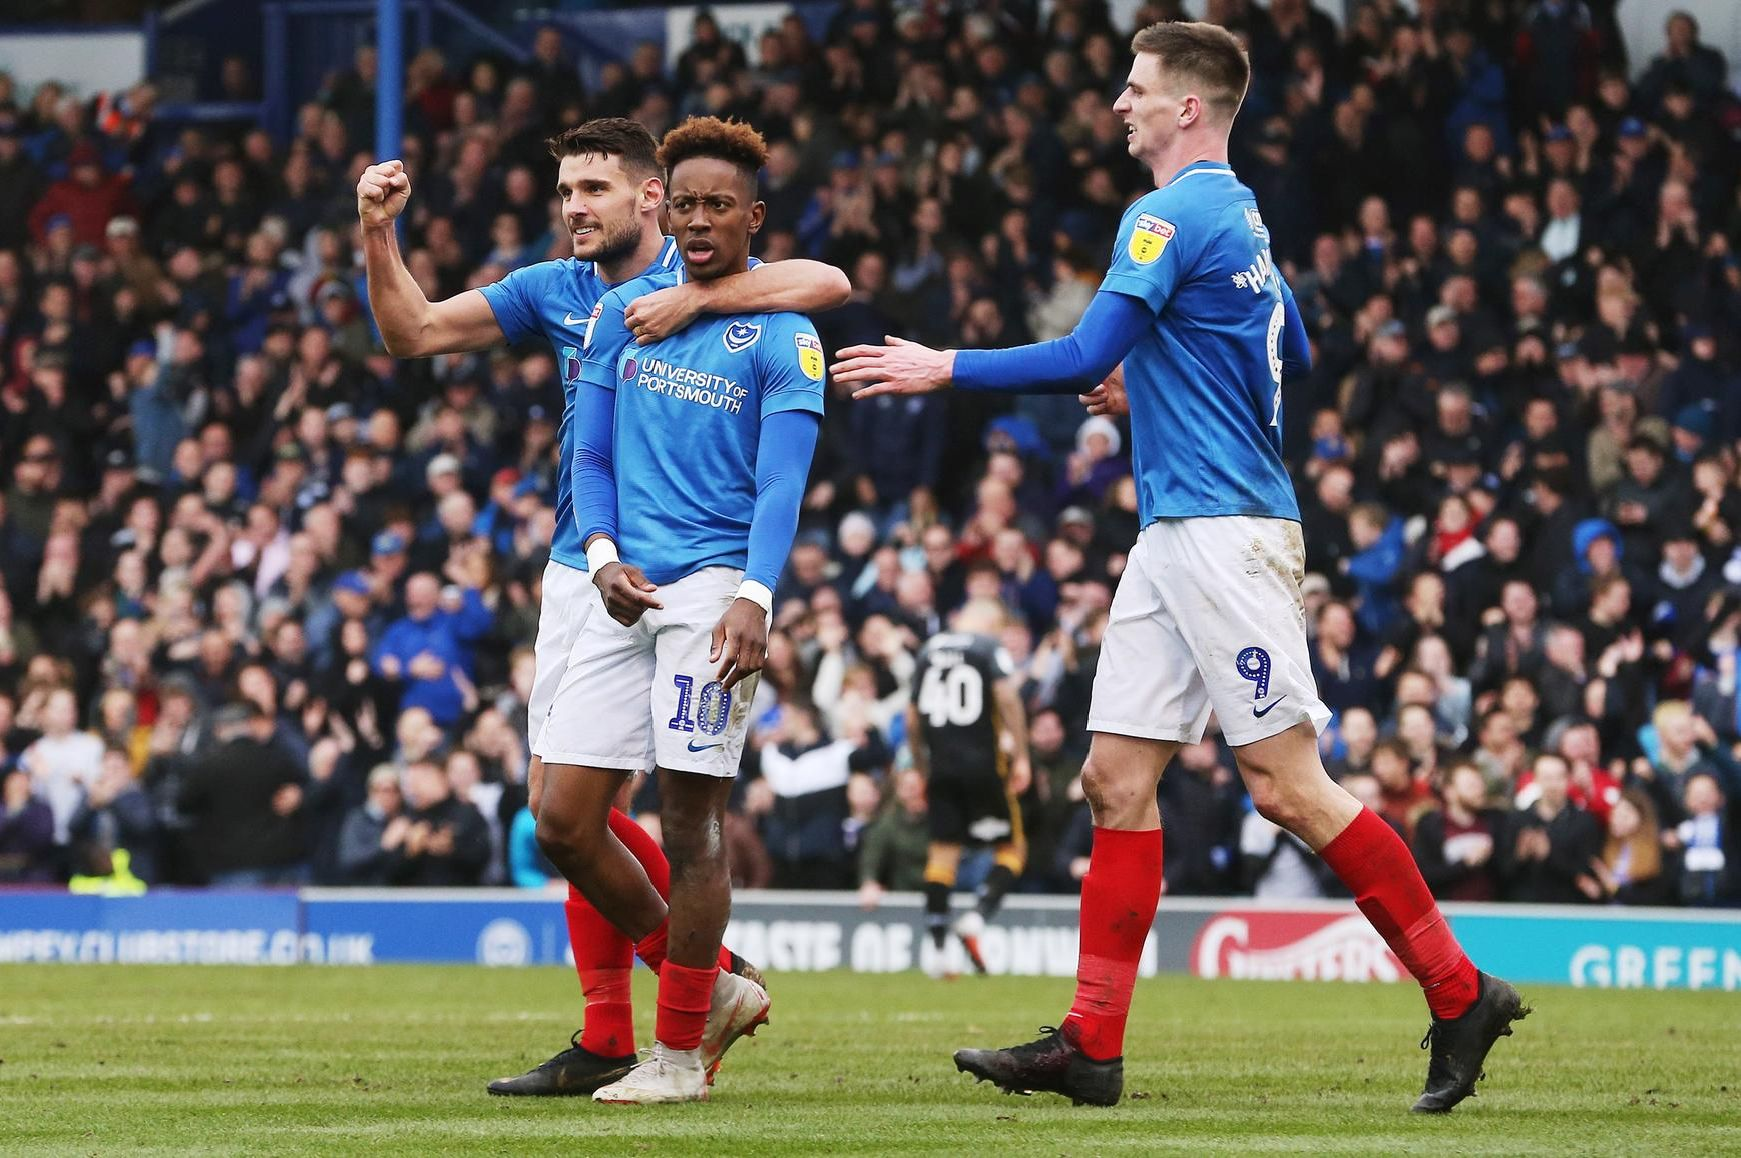 Pompey celebrate Jamal Lowe's goal against Bradford - two minutes after Hope Akpan had netted for the visitors. Picture: Joe Pepler